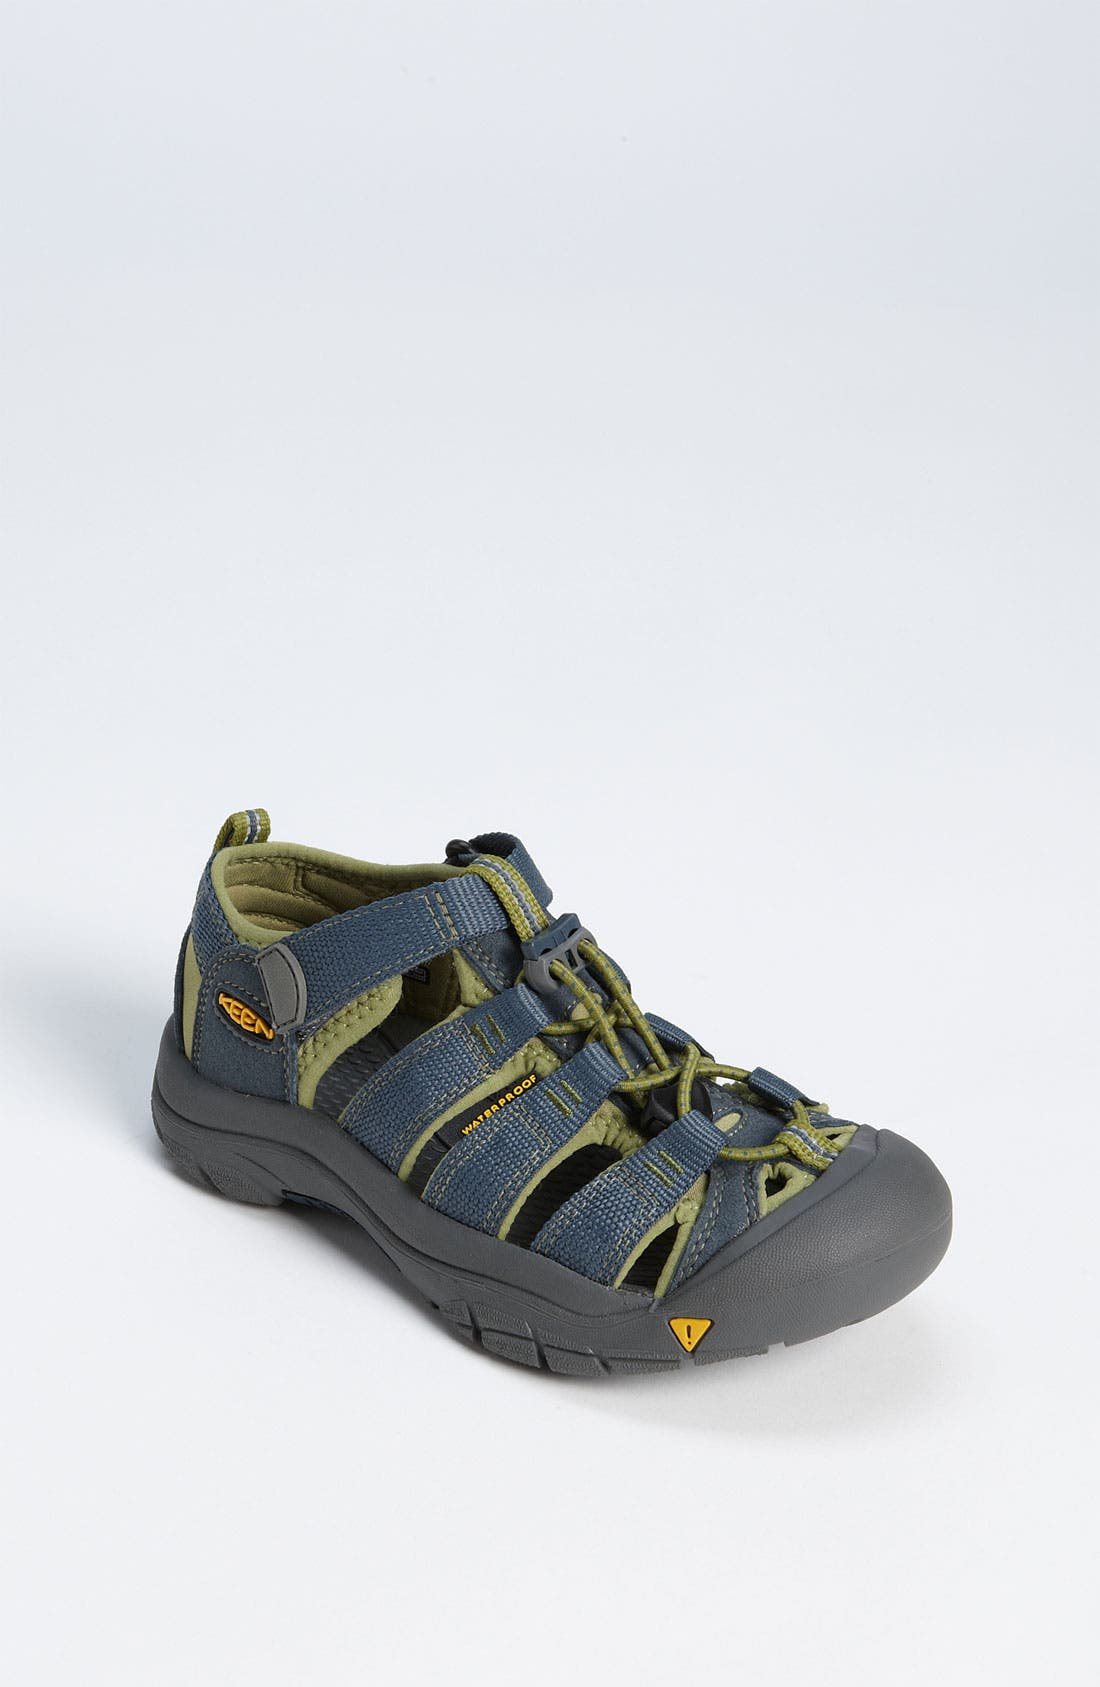 Main Image - Keen 'Newport H2' Sandal (Toddler, Little Kid & Big Kid)